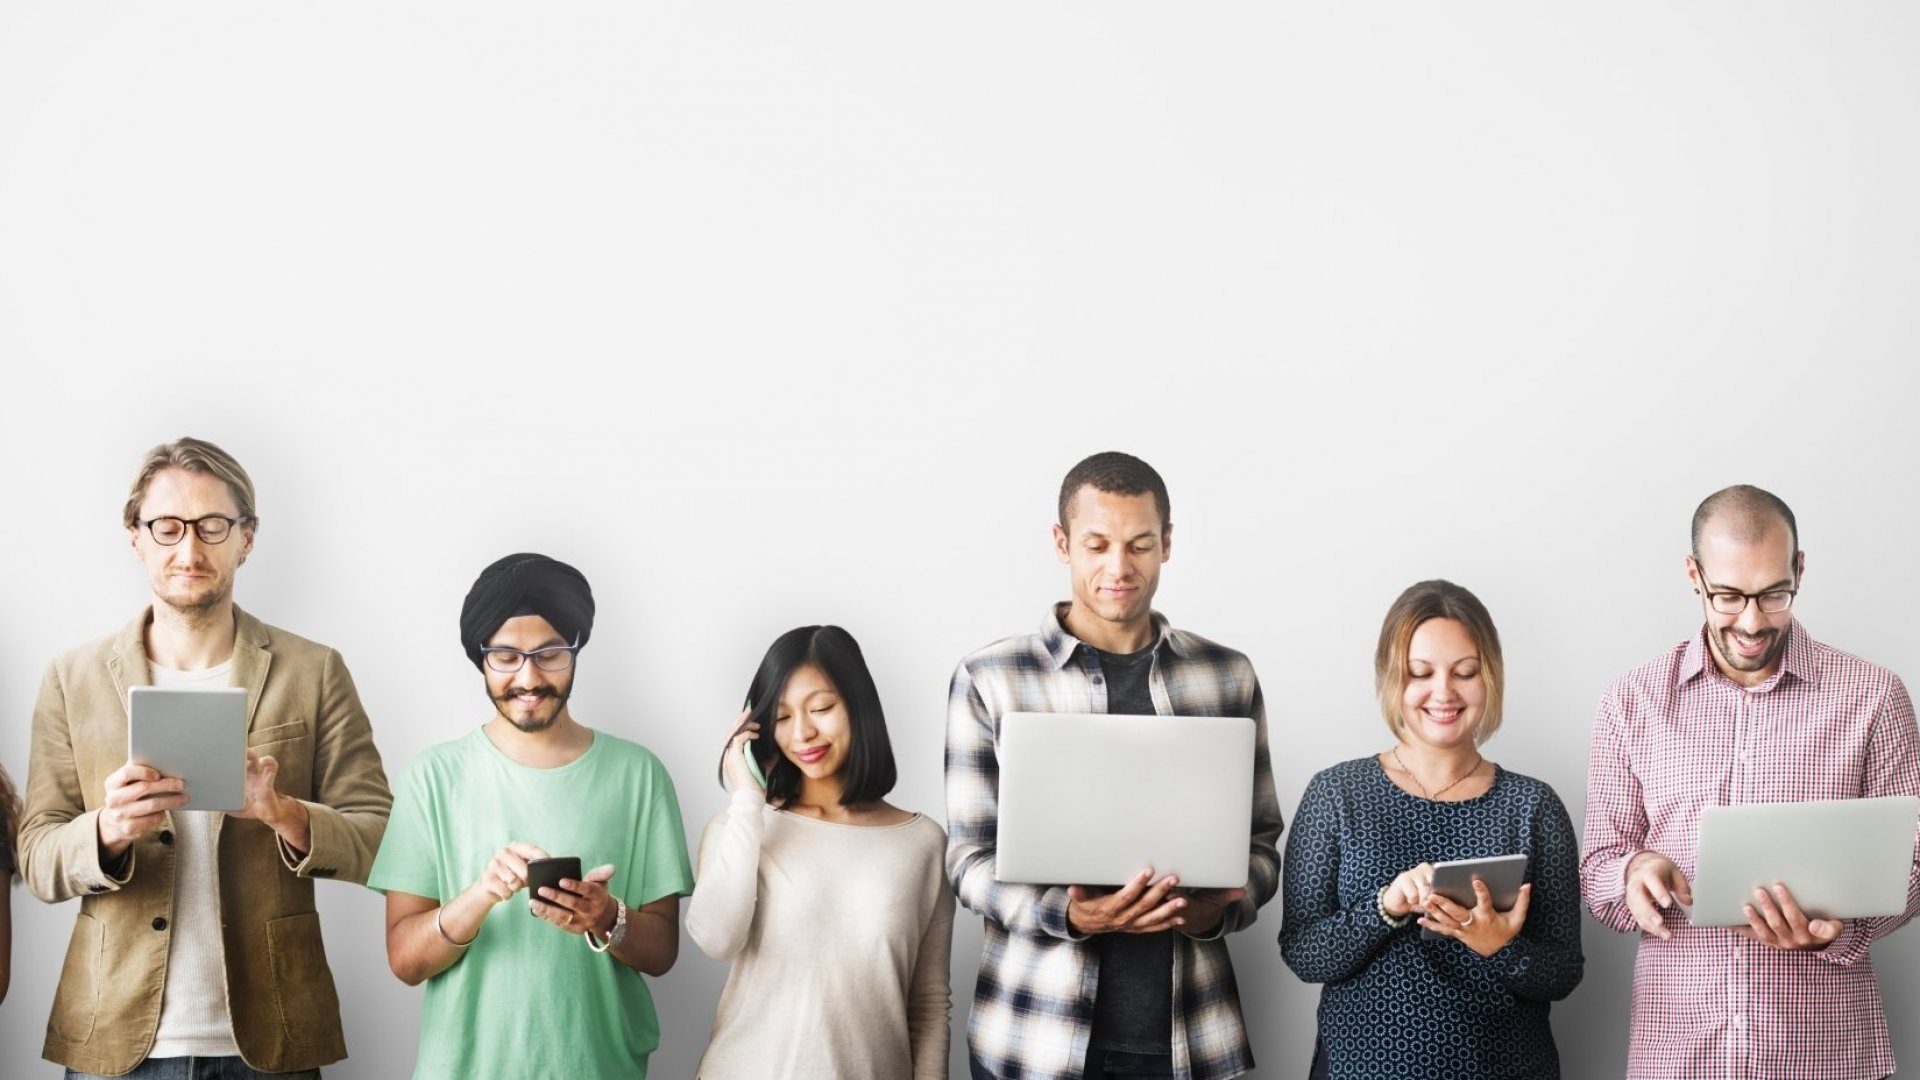 Are You Winging It With BYOD? Formalize Your Policy ASAP